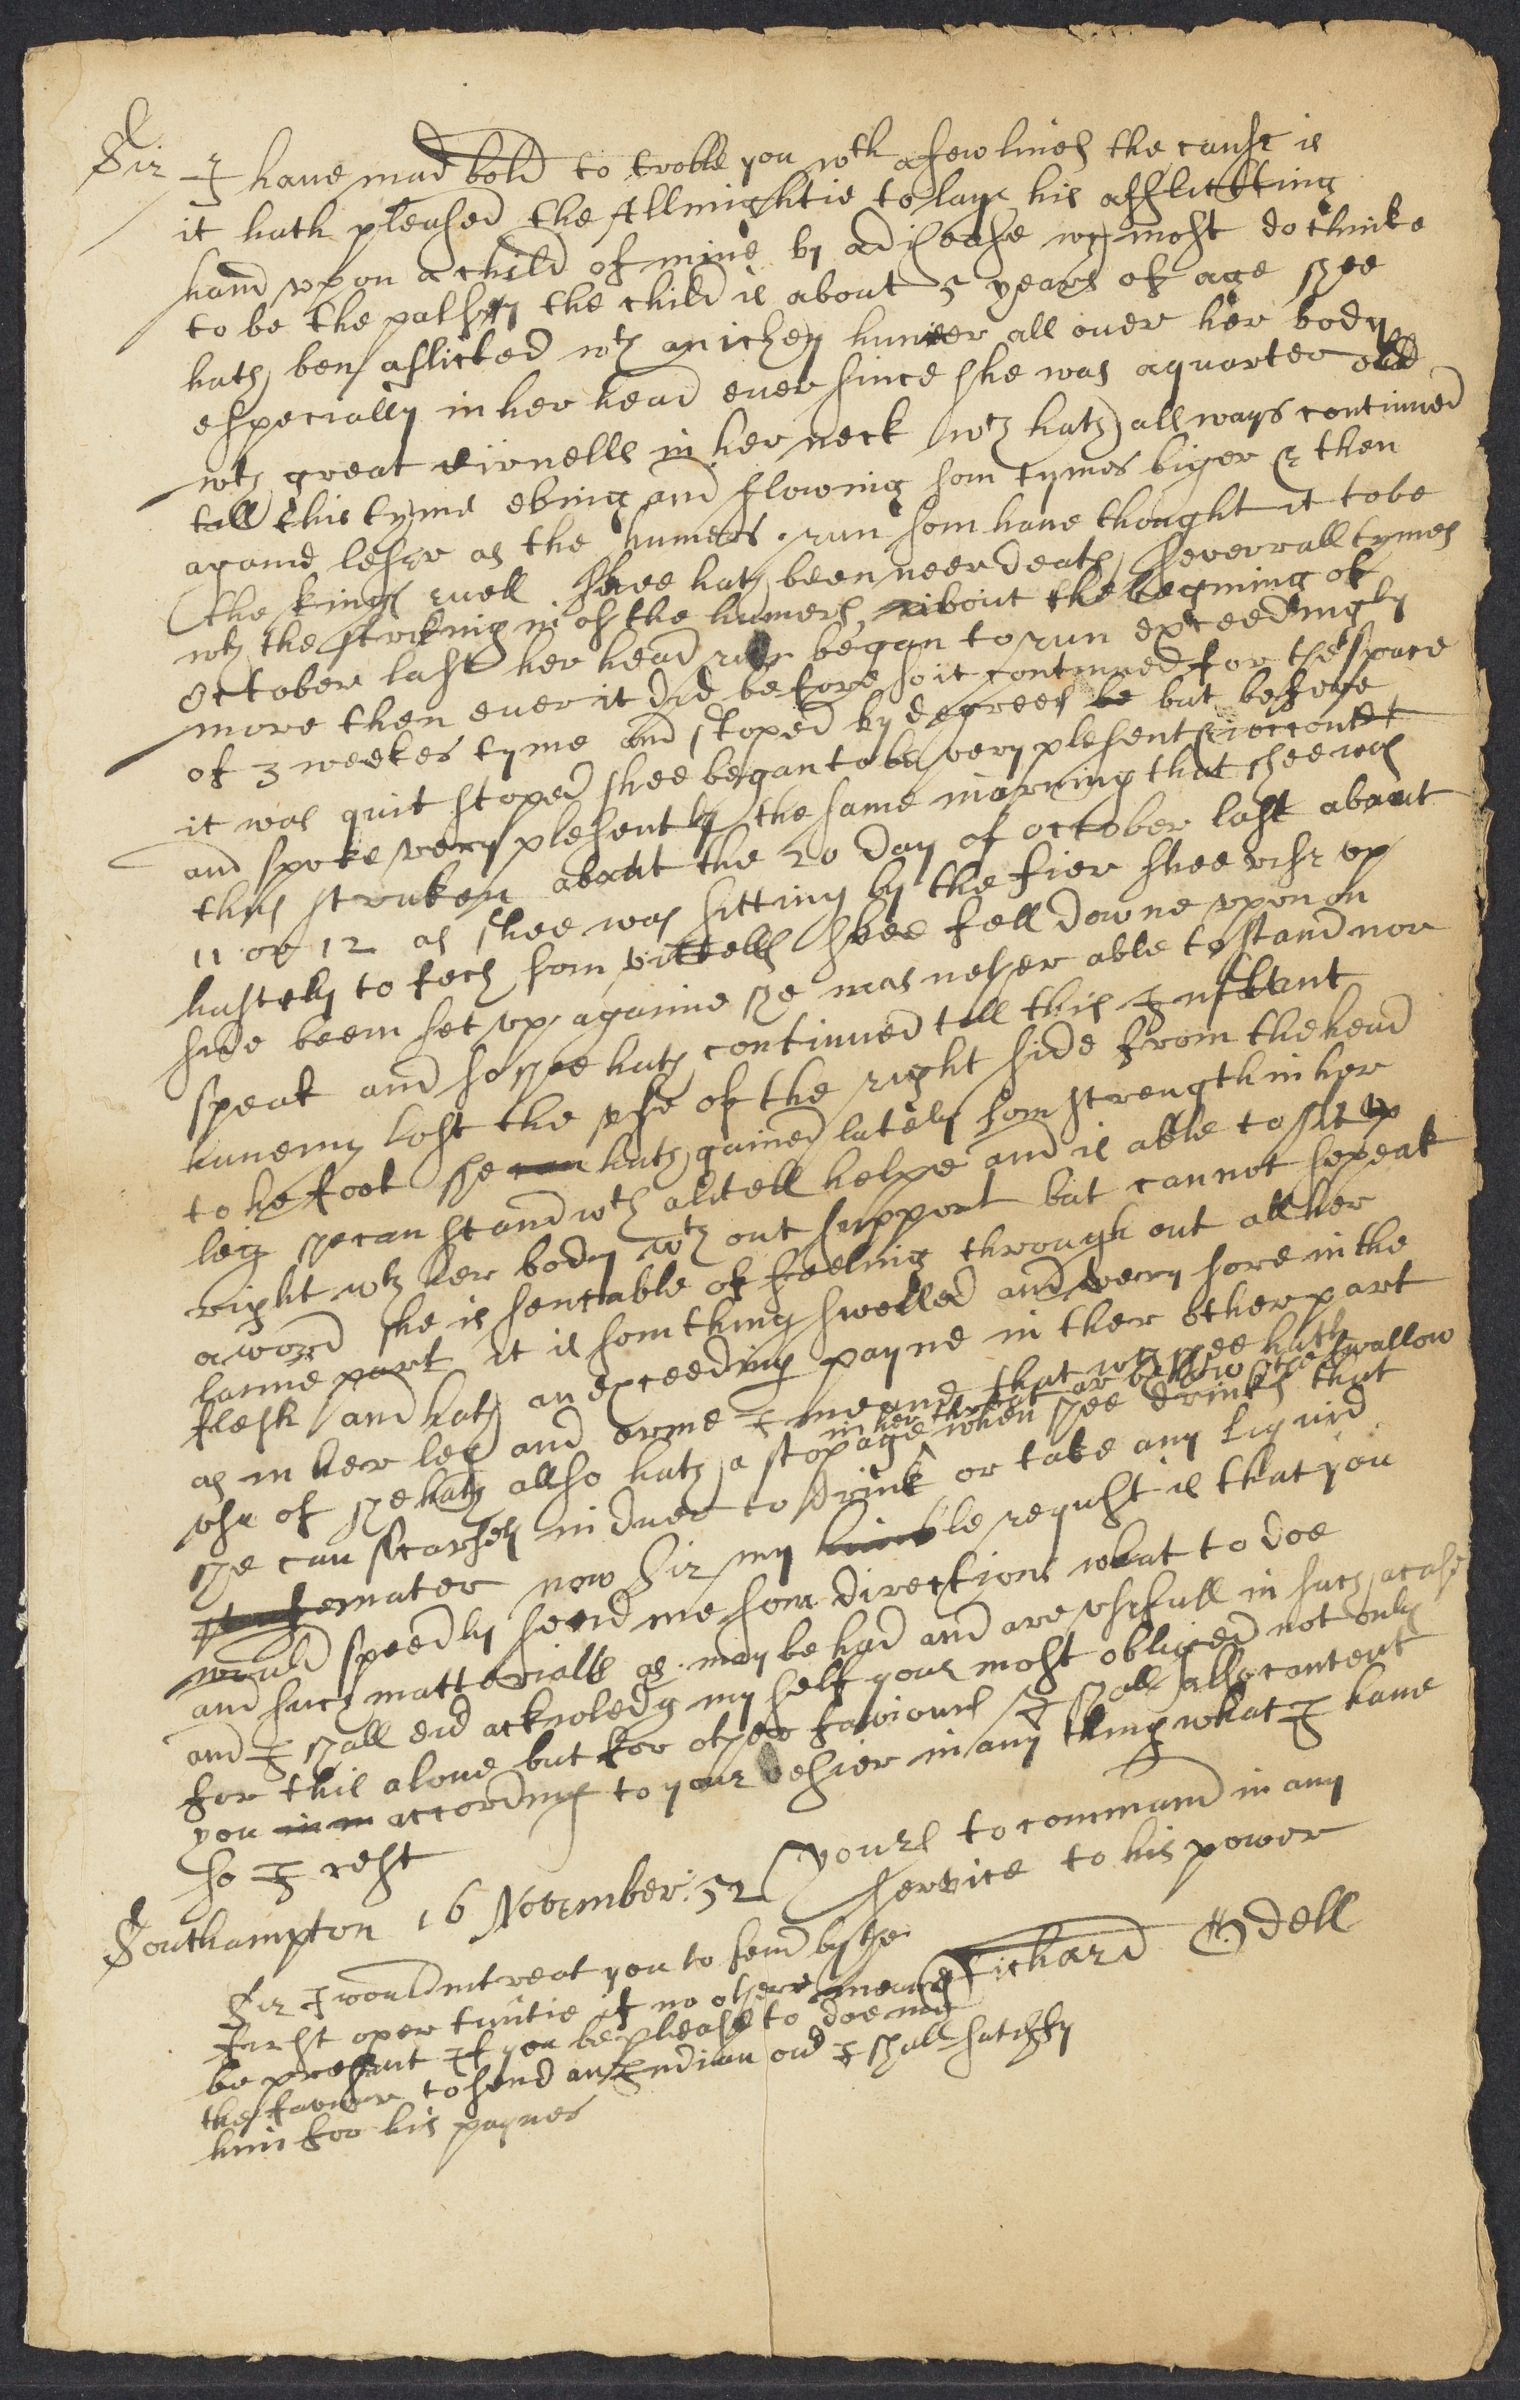 Odell, Richard, 2 autographed letters signed to John Winthrop; Southampton, Long Island, 1652 November 16-1653